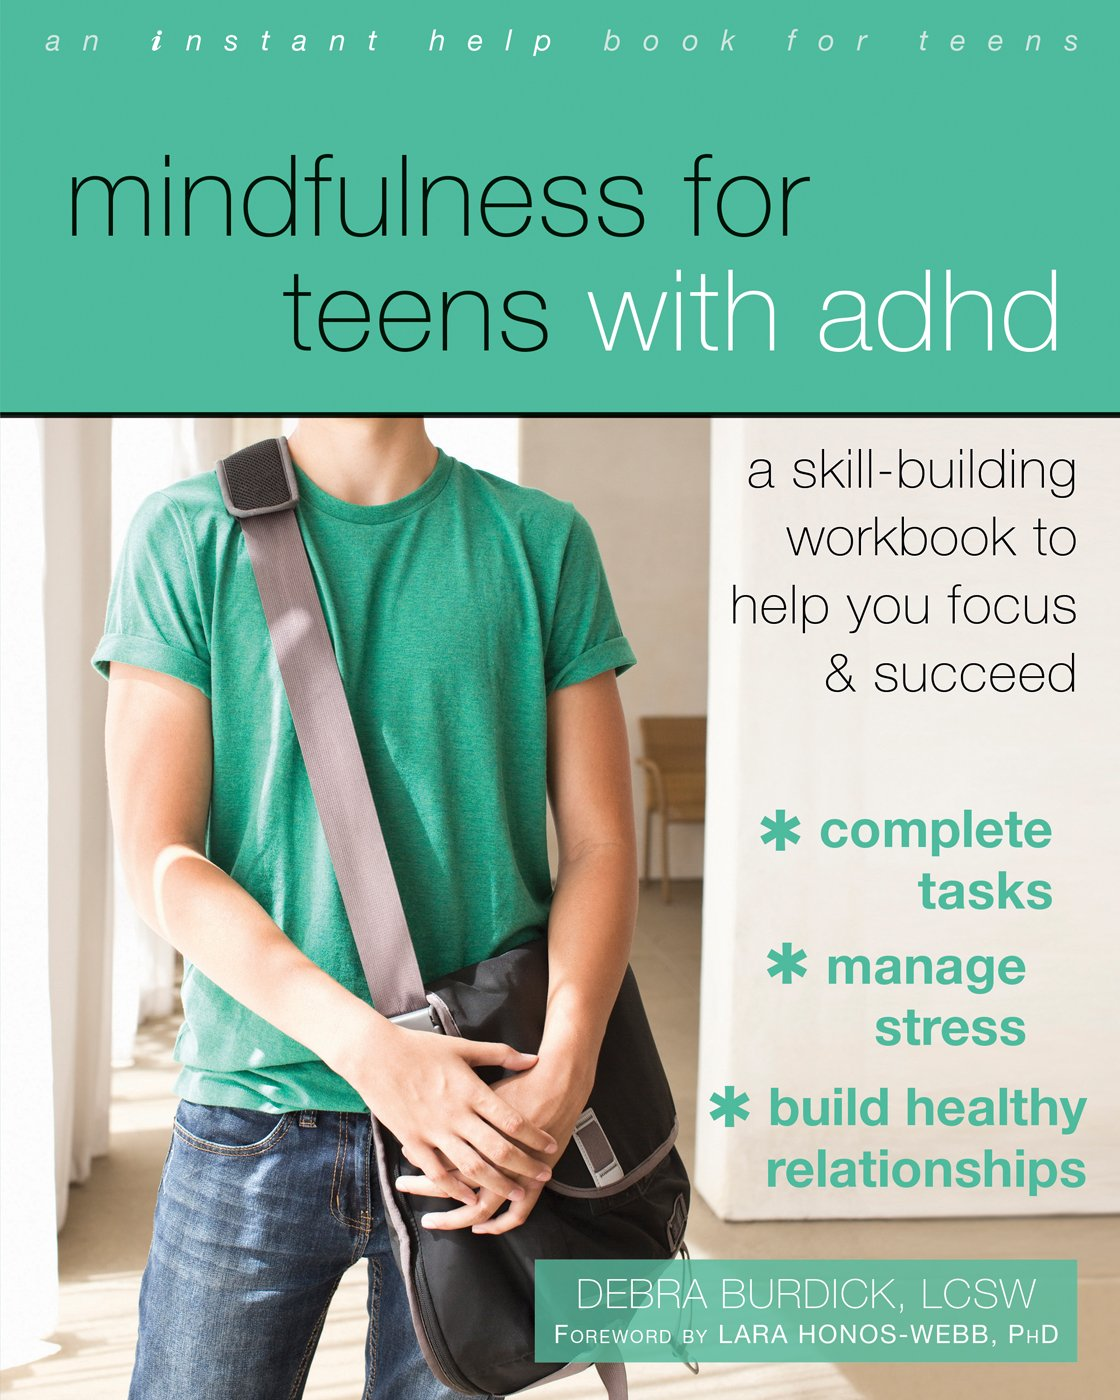 Mindfulness for Teens with ADHD: A Skill-Building Workbook to Help You Focus and Succeed by INSTANT HELP